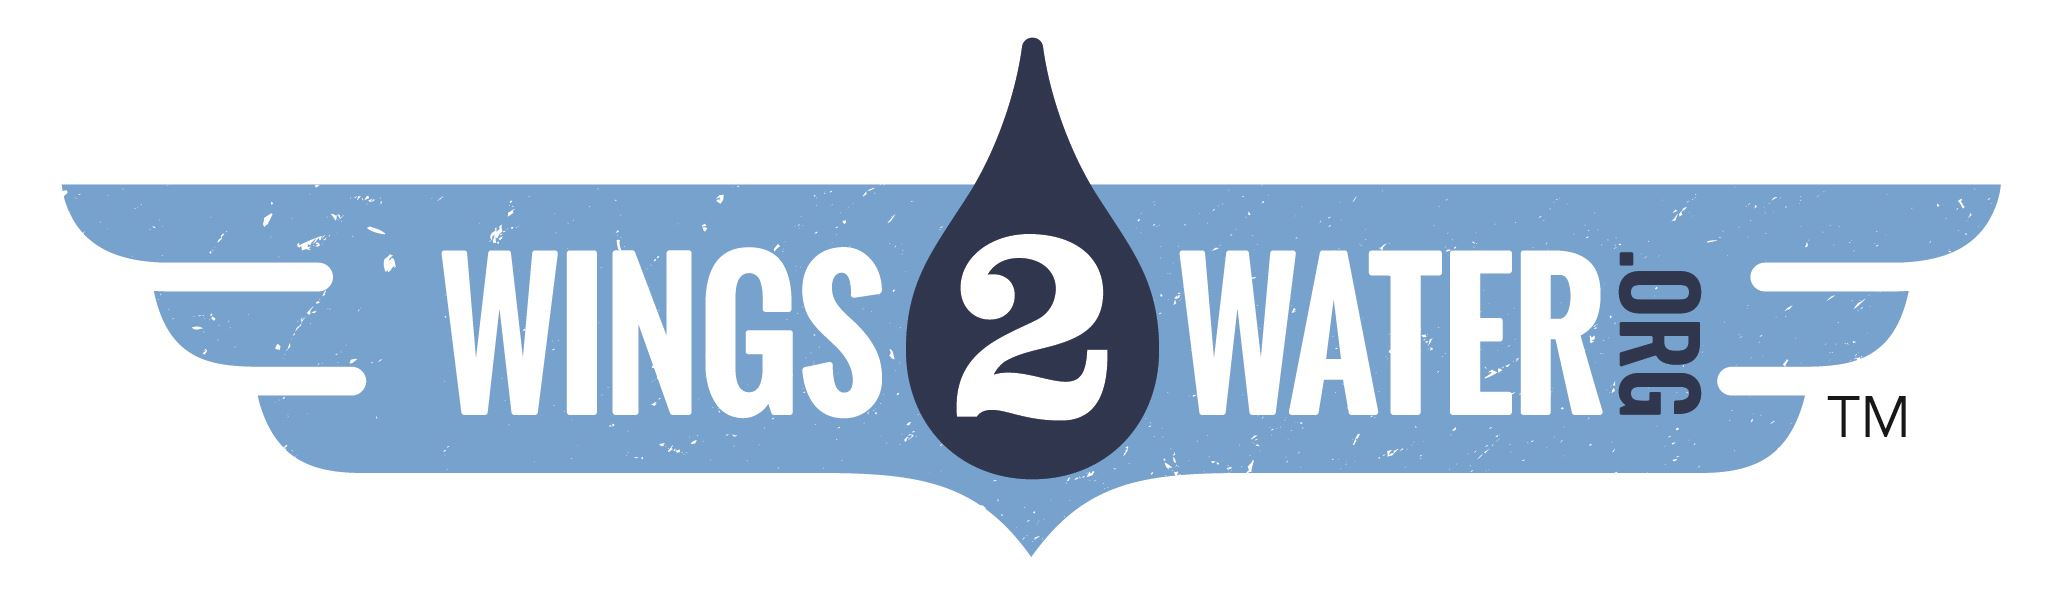 Wings2Water Logo dot org color logo